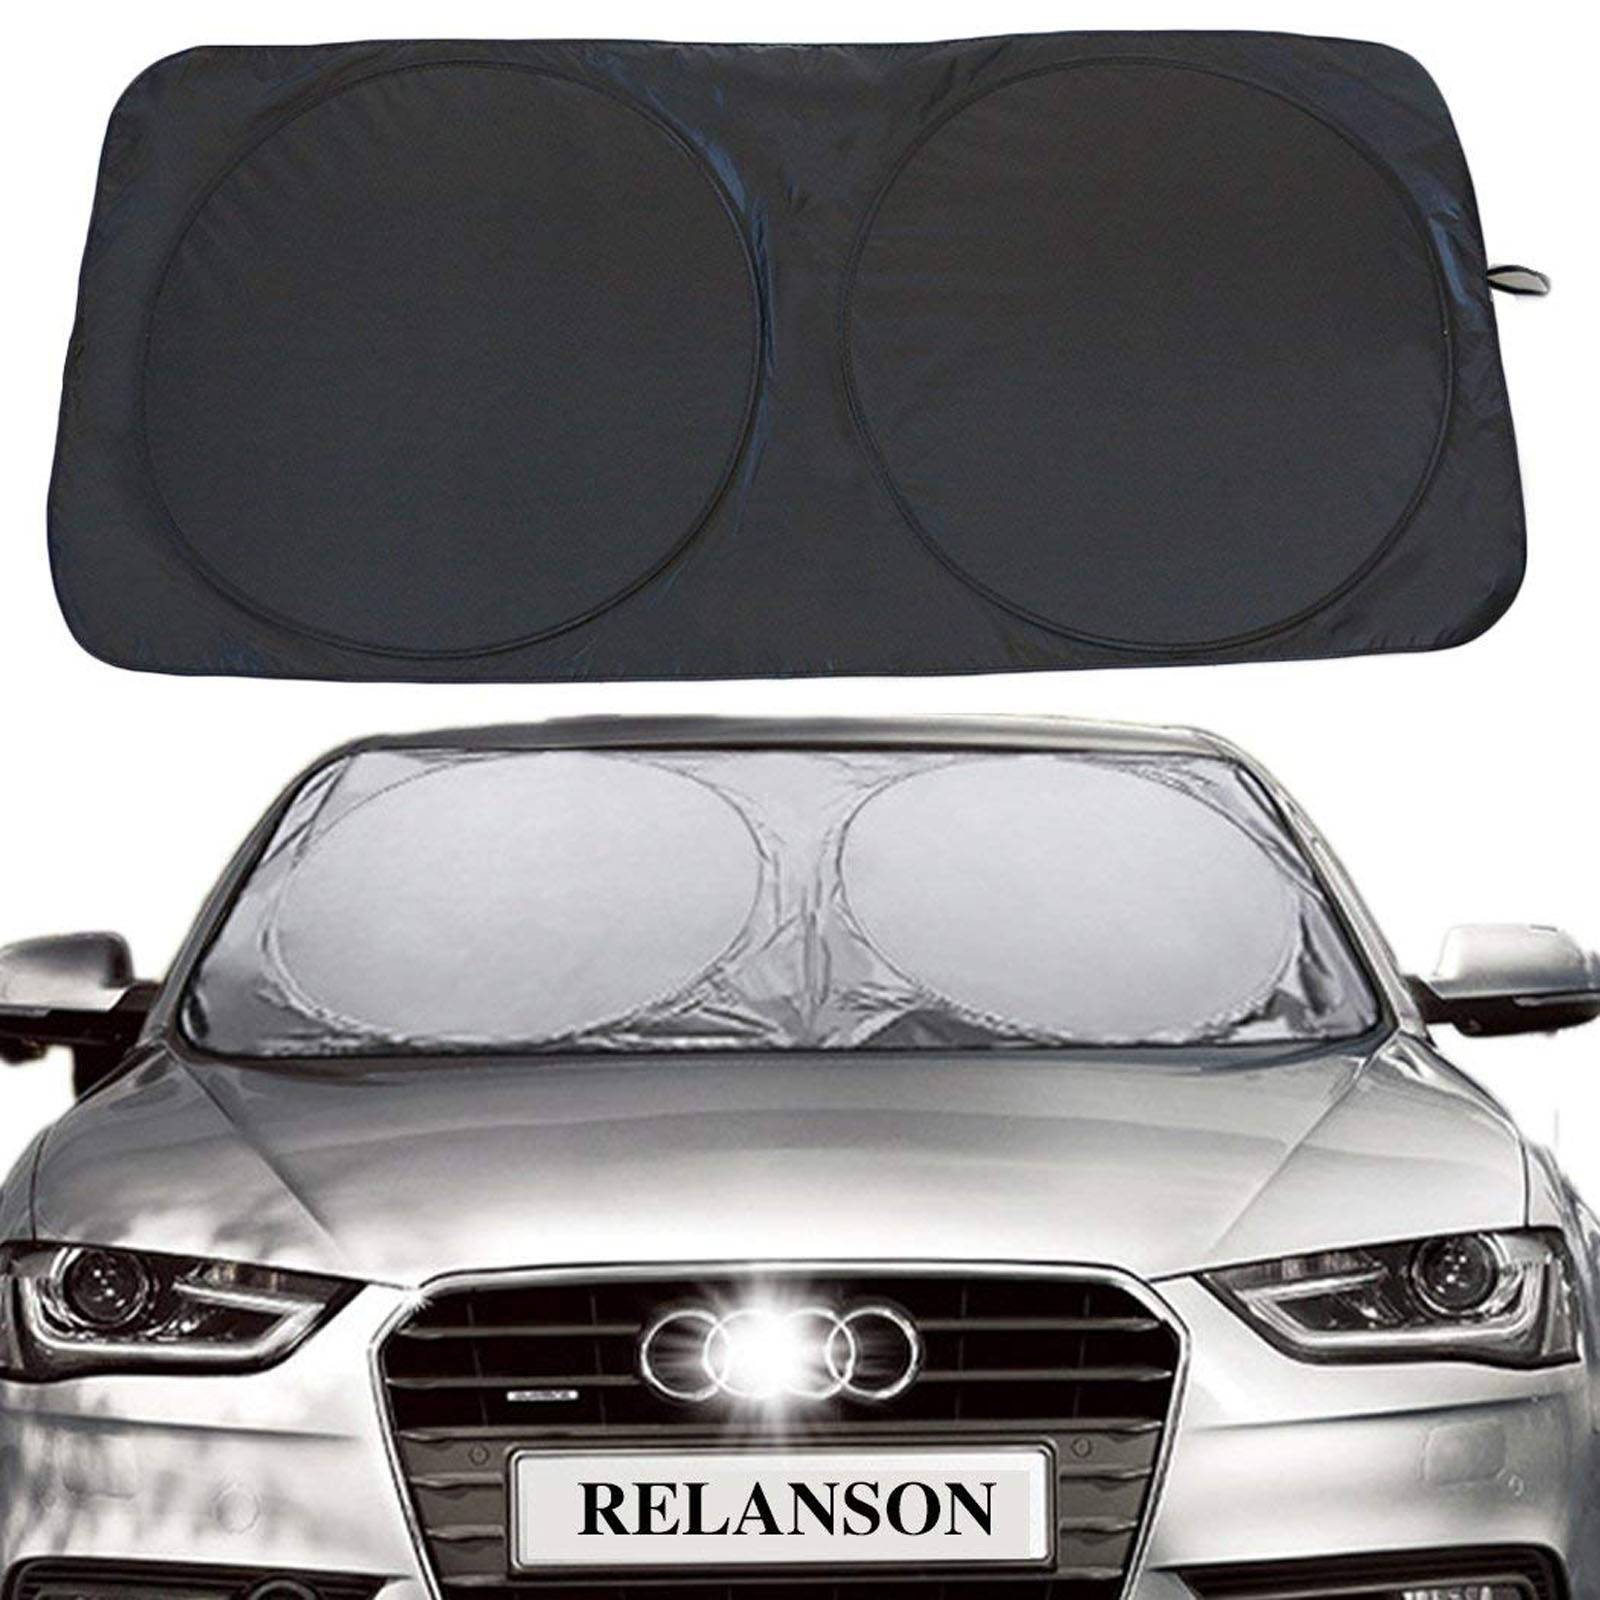 Details about Car Front Window Sun Shade Visor Folding Auto Windshield  Block Cover Protector 5ce536f932e